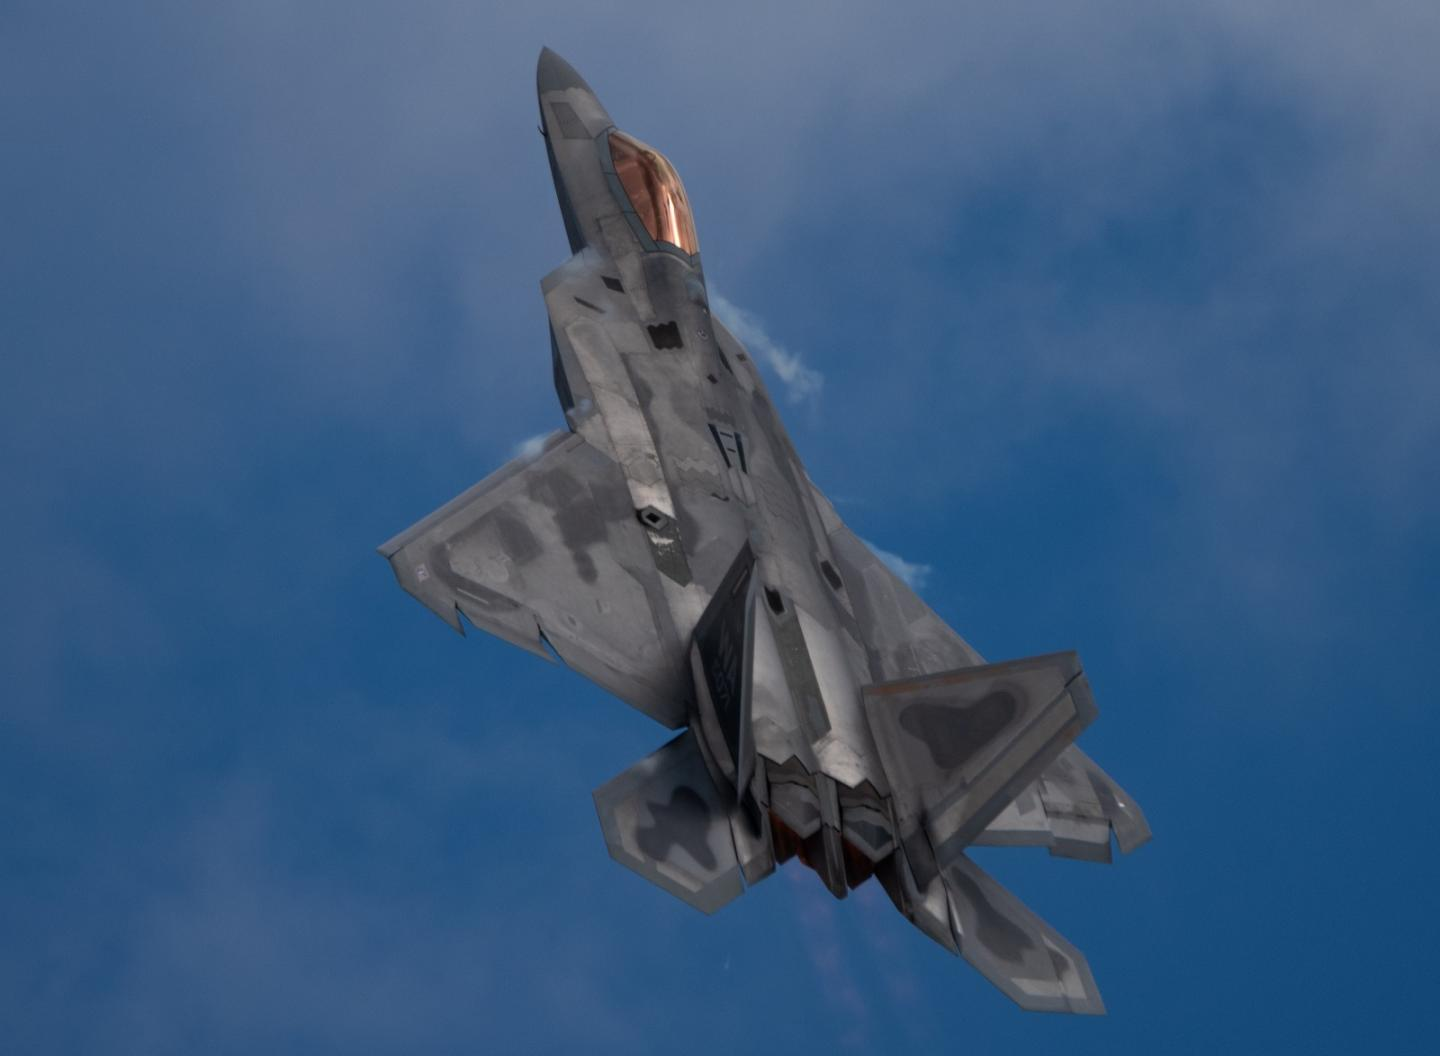 The Air Force Just Closed The Door on New F-22 Raptors